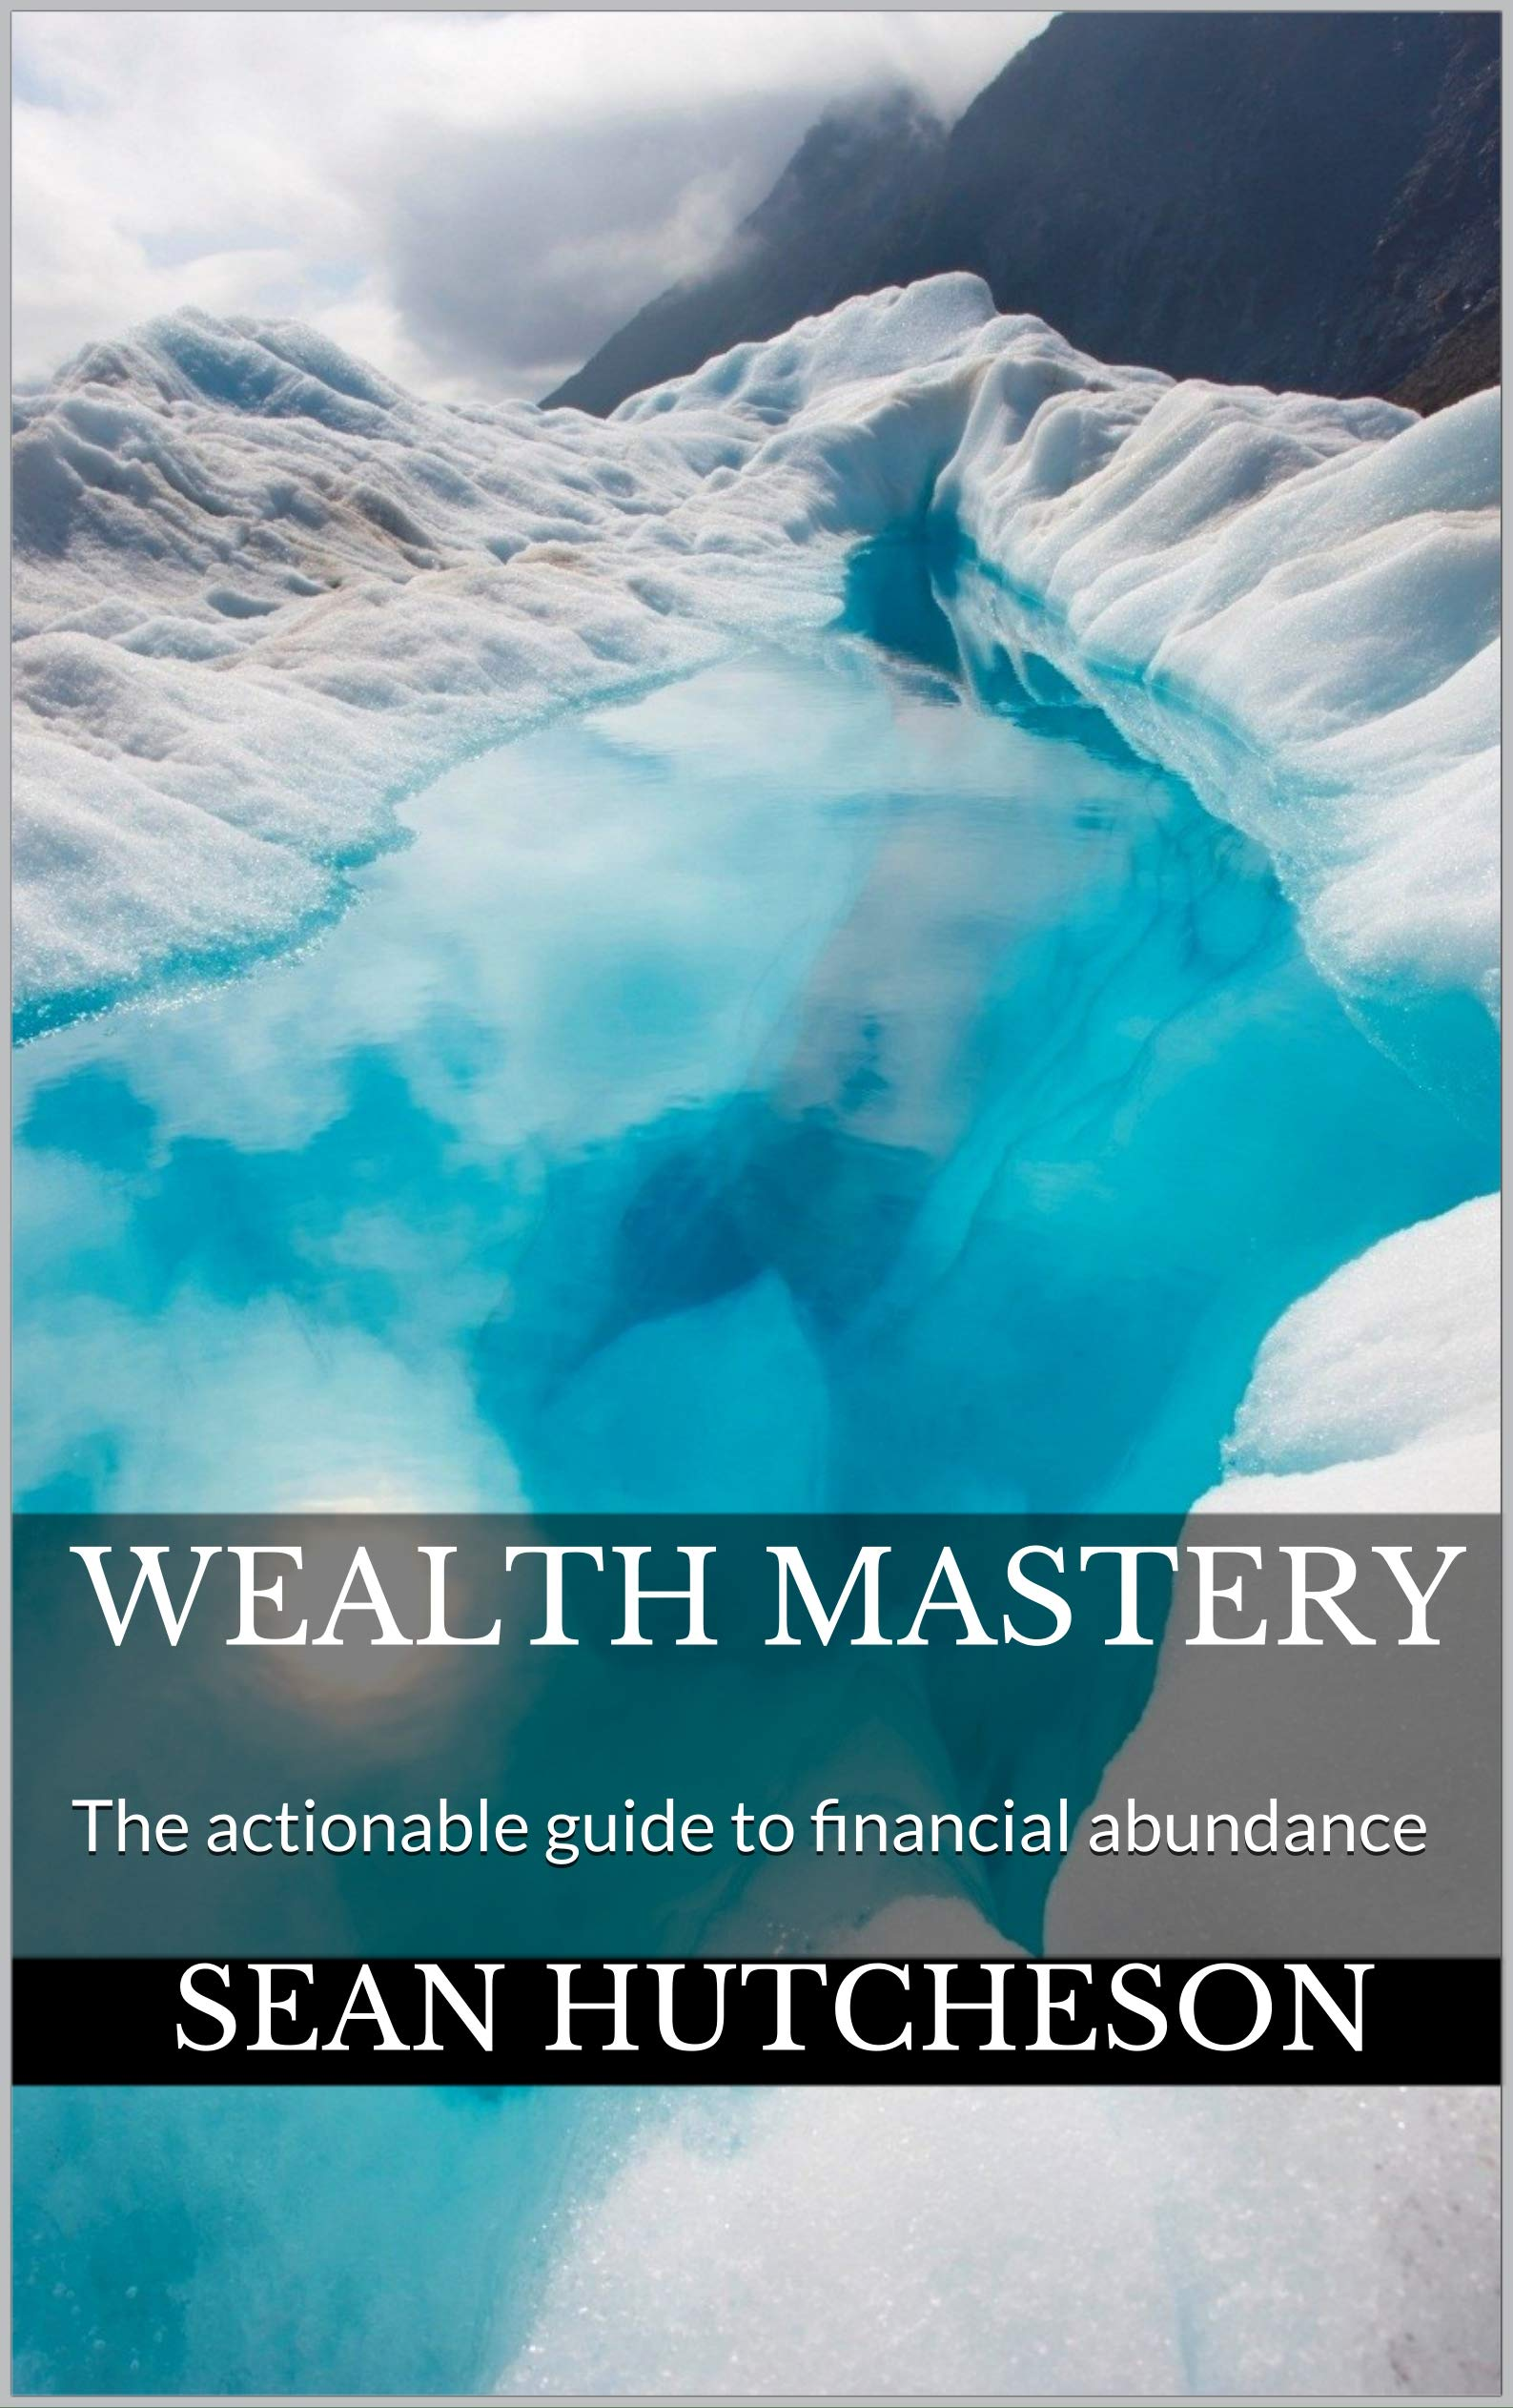 Wealth Mastery: The actionable guide to financial abundance